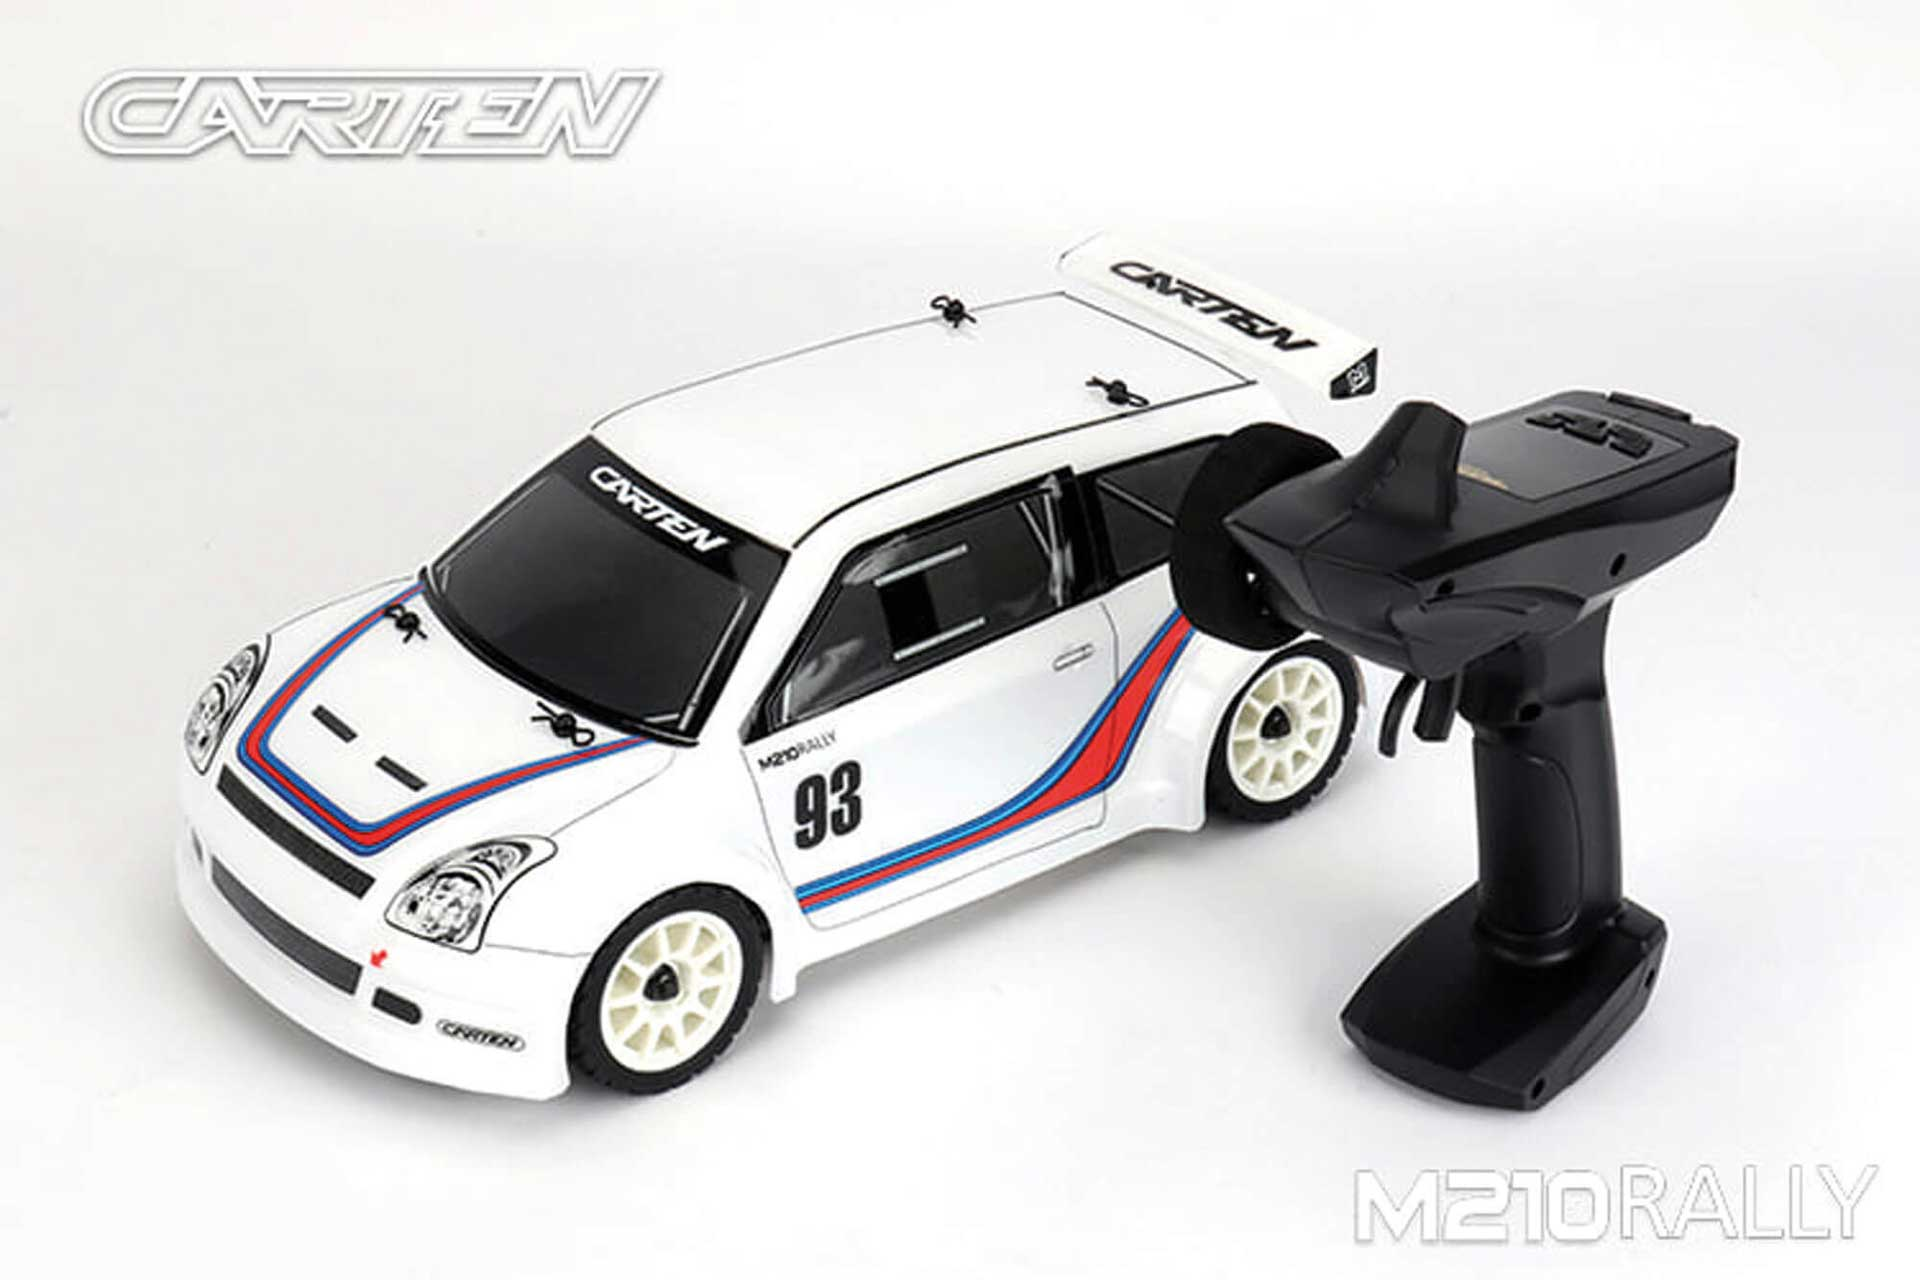 CARTEN M210 RALLY 1/10 M-Chassis RTR 2,4GHz EP